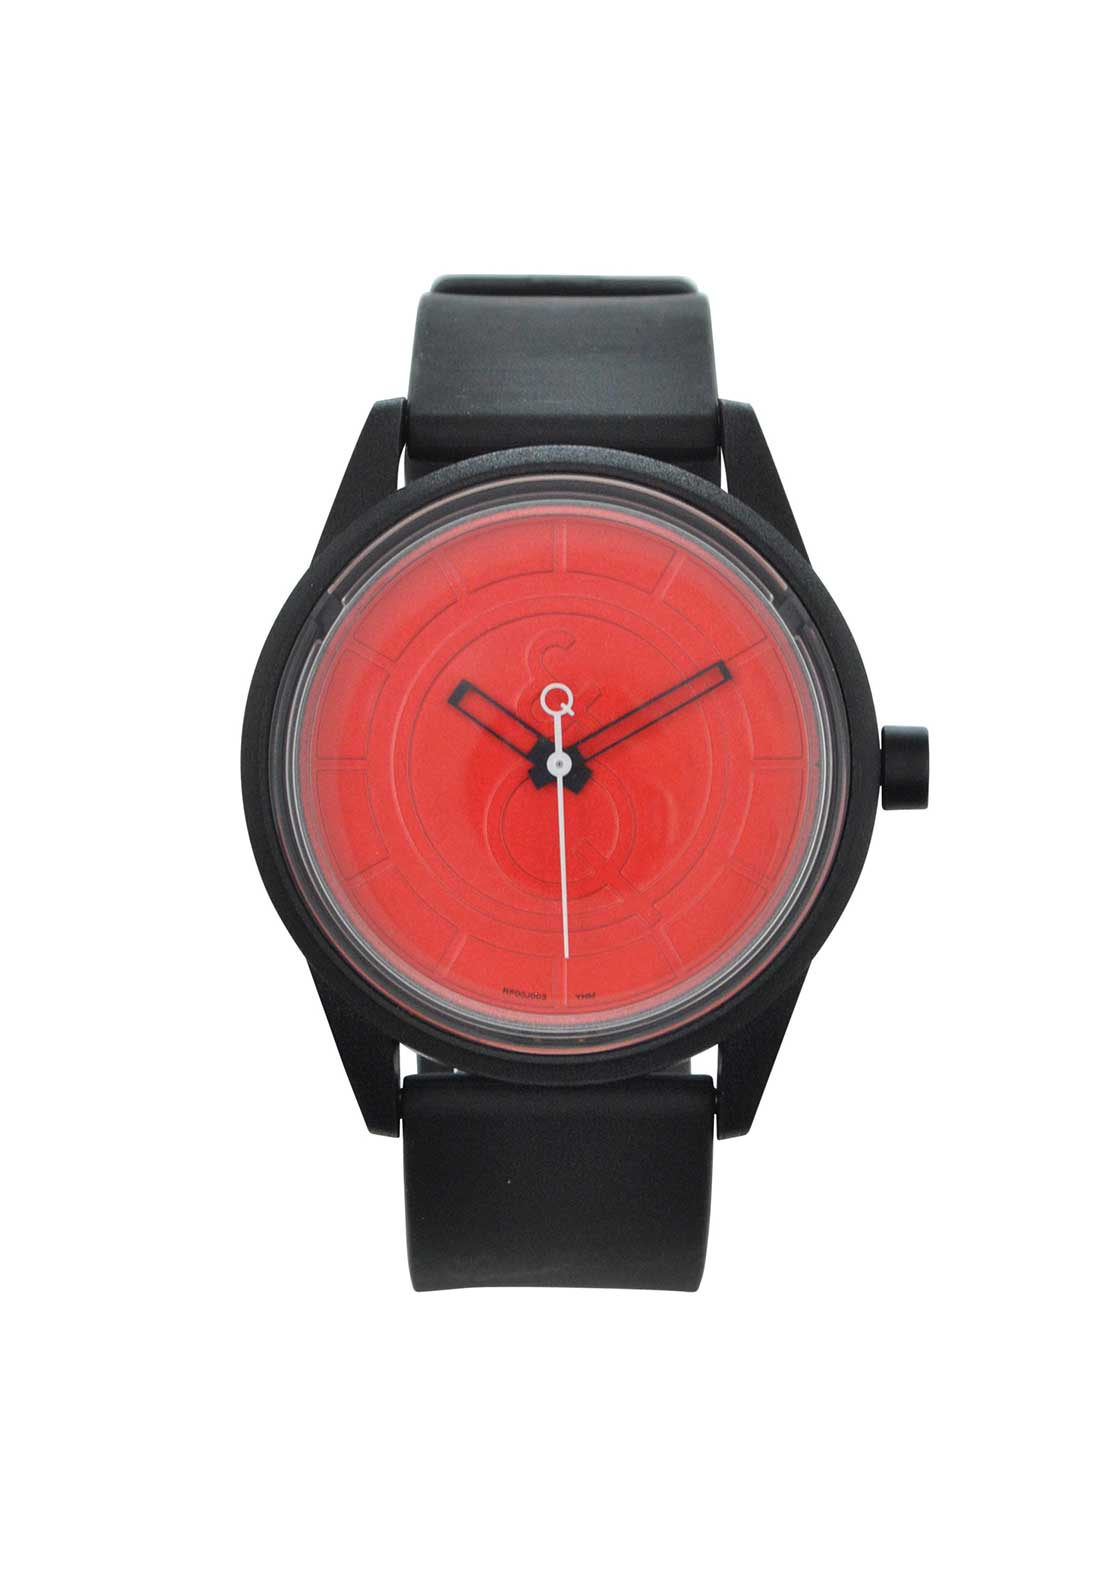 Q & Q Smile Solar Powered Unisex Watch, Black and Red